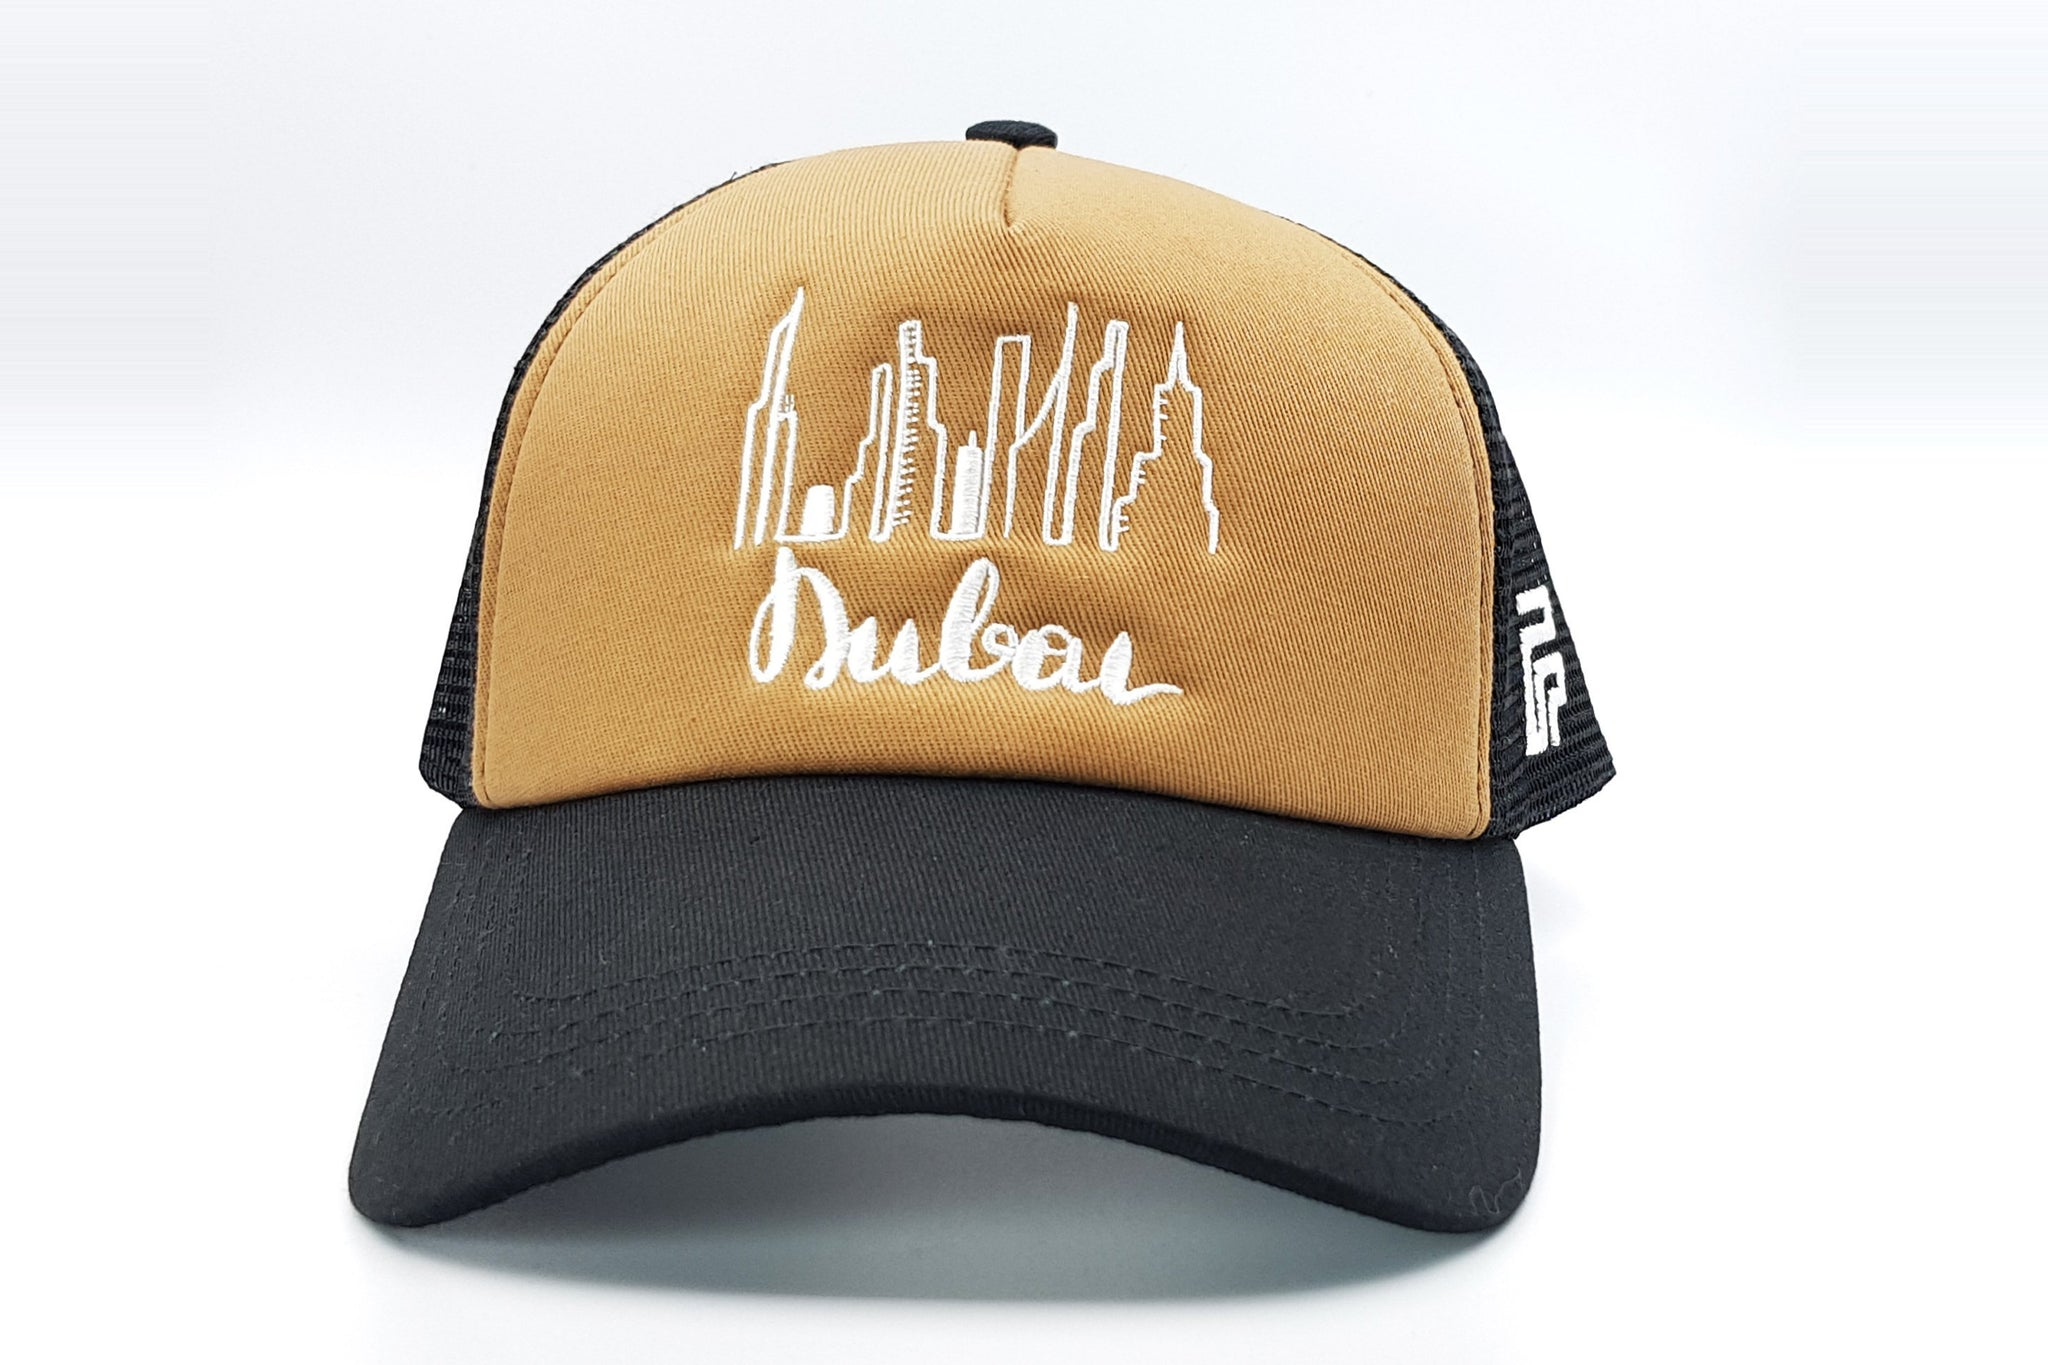 Dubai cap brown-black Foxerz front-side view